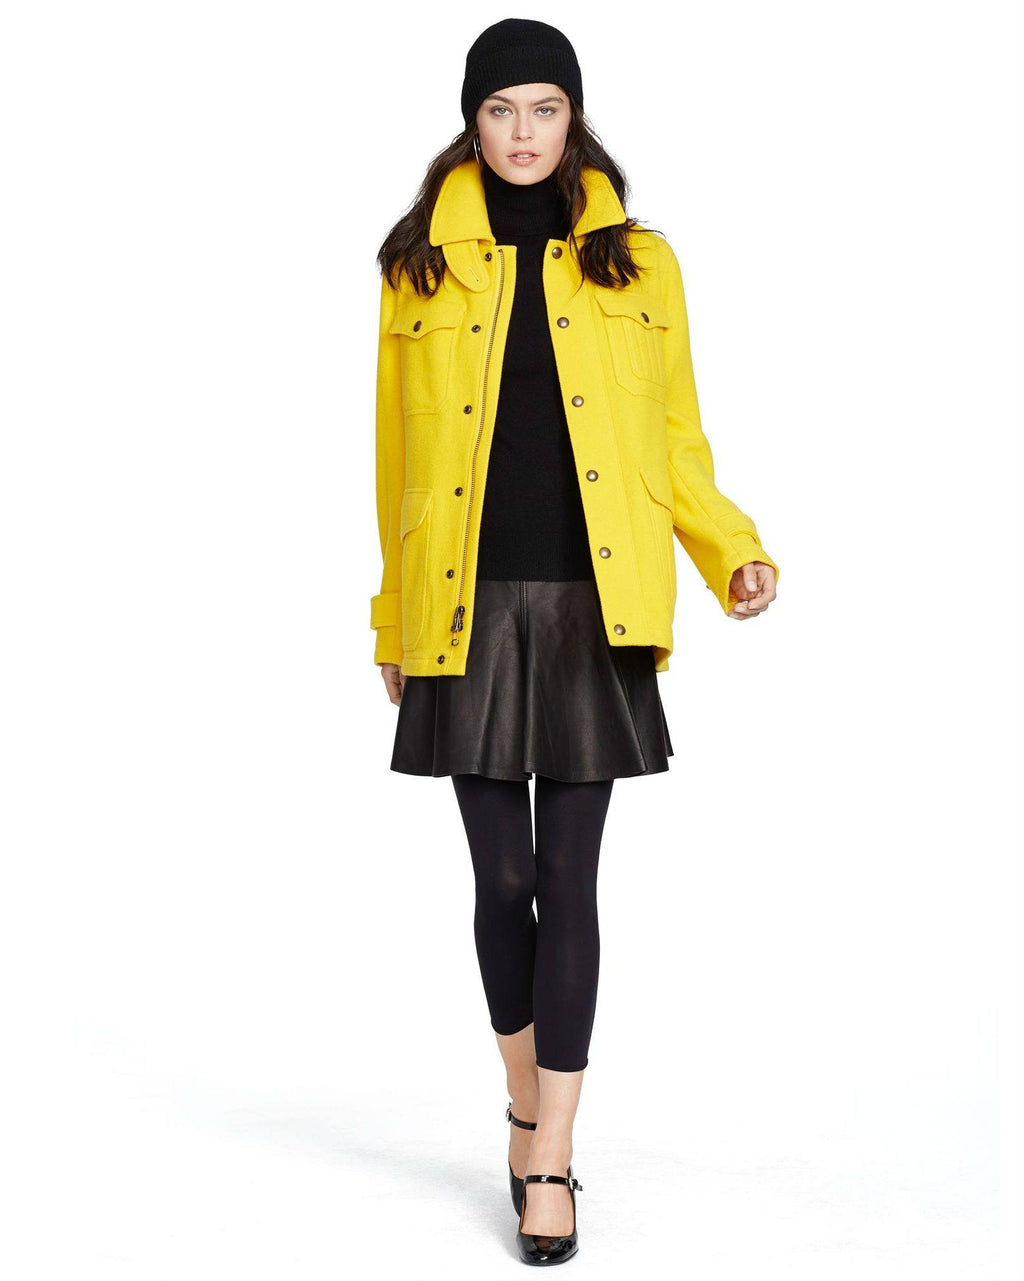 Polo Ralph Lauren Yellow Wool Blend Thicket Coat-LAUREN RALPH LAUREN-Fashionbarn shop